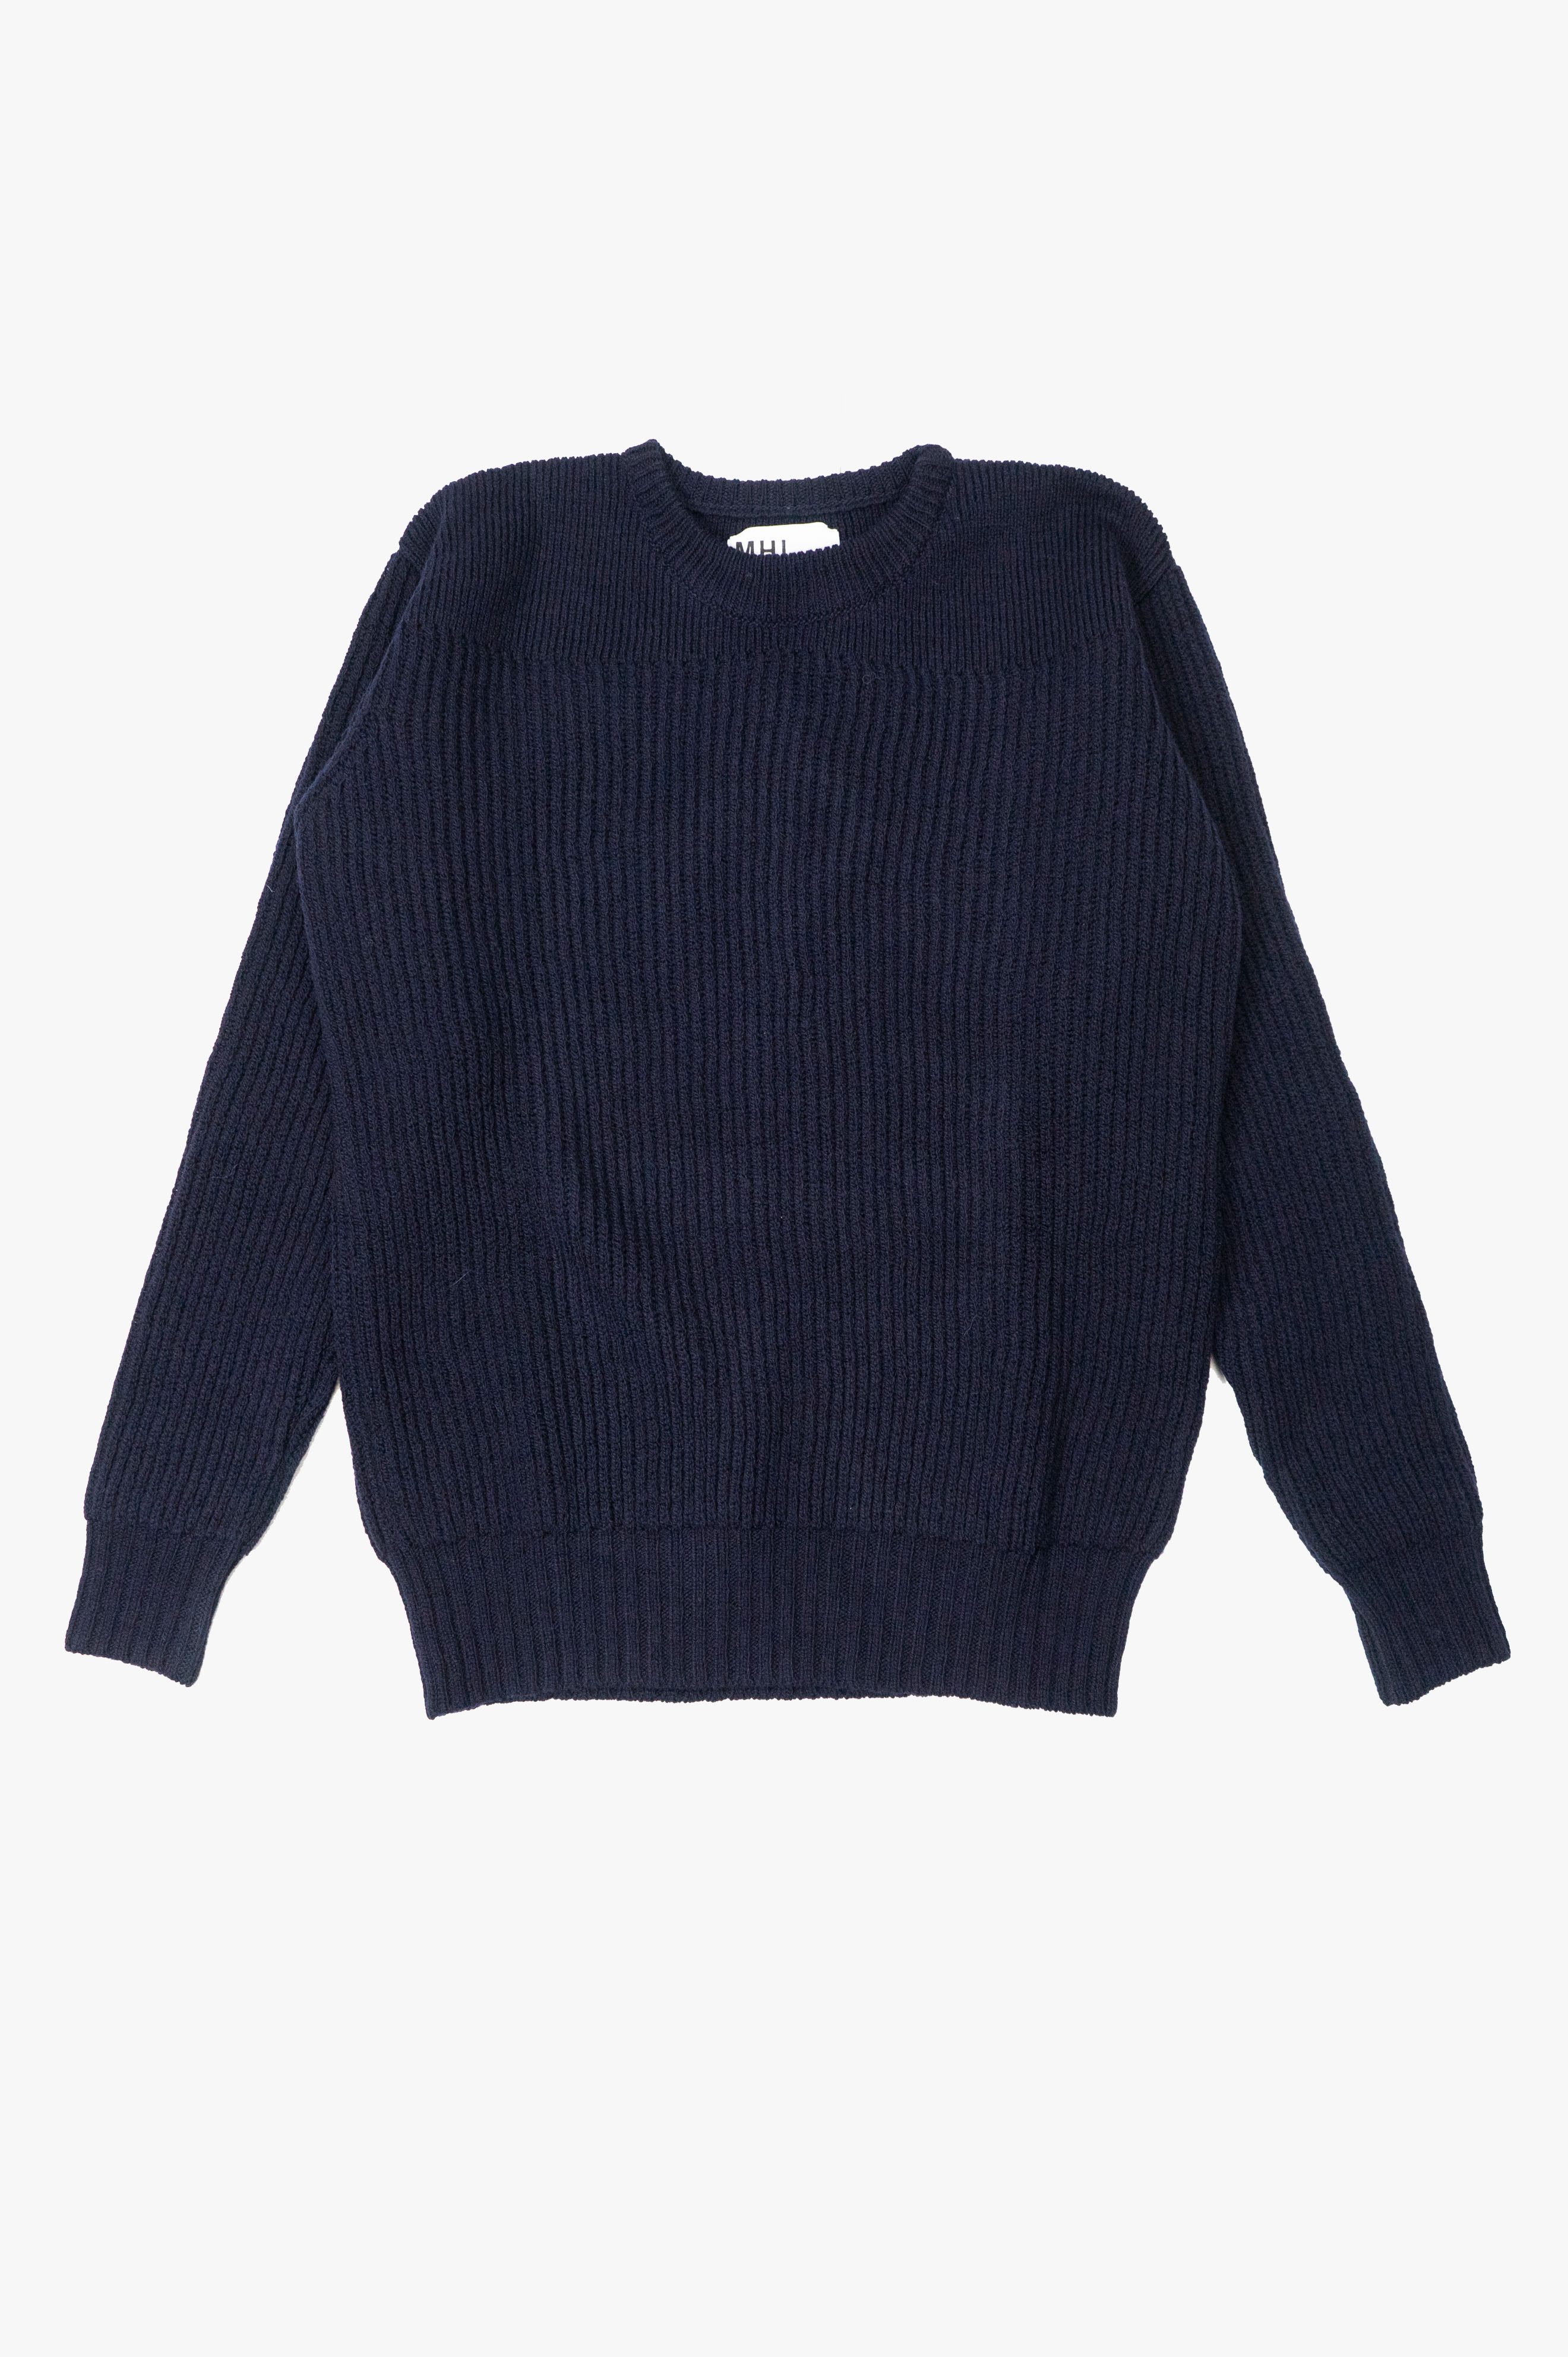 Fishermans Rib Sweater British Merino Navy